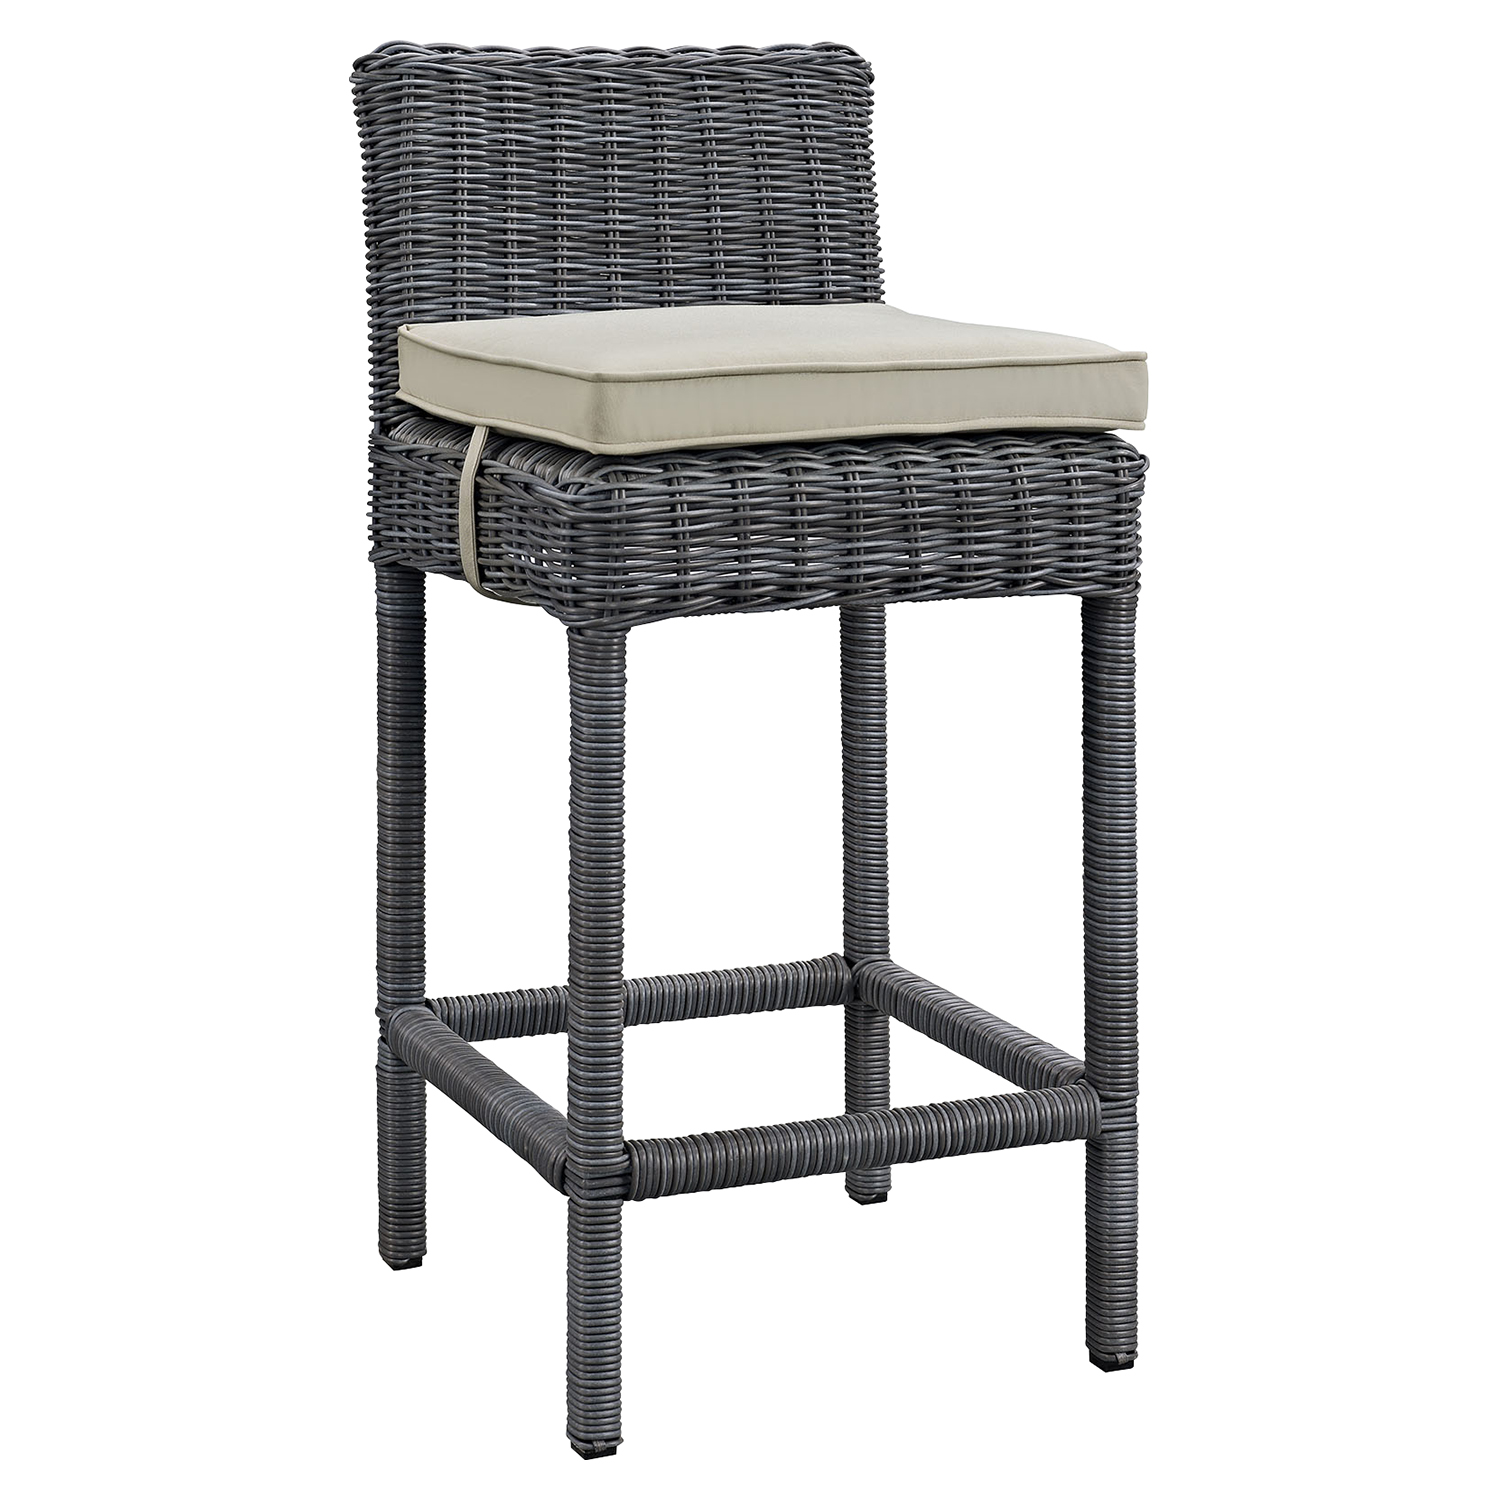 Summon Outdoor Patio Wicker Bar Stool - Sunbrella Antique Canvas Beige (Set of 4) - EEI-2198-GRY-BEI-SET